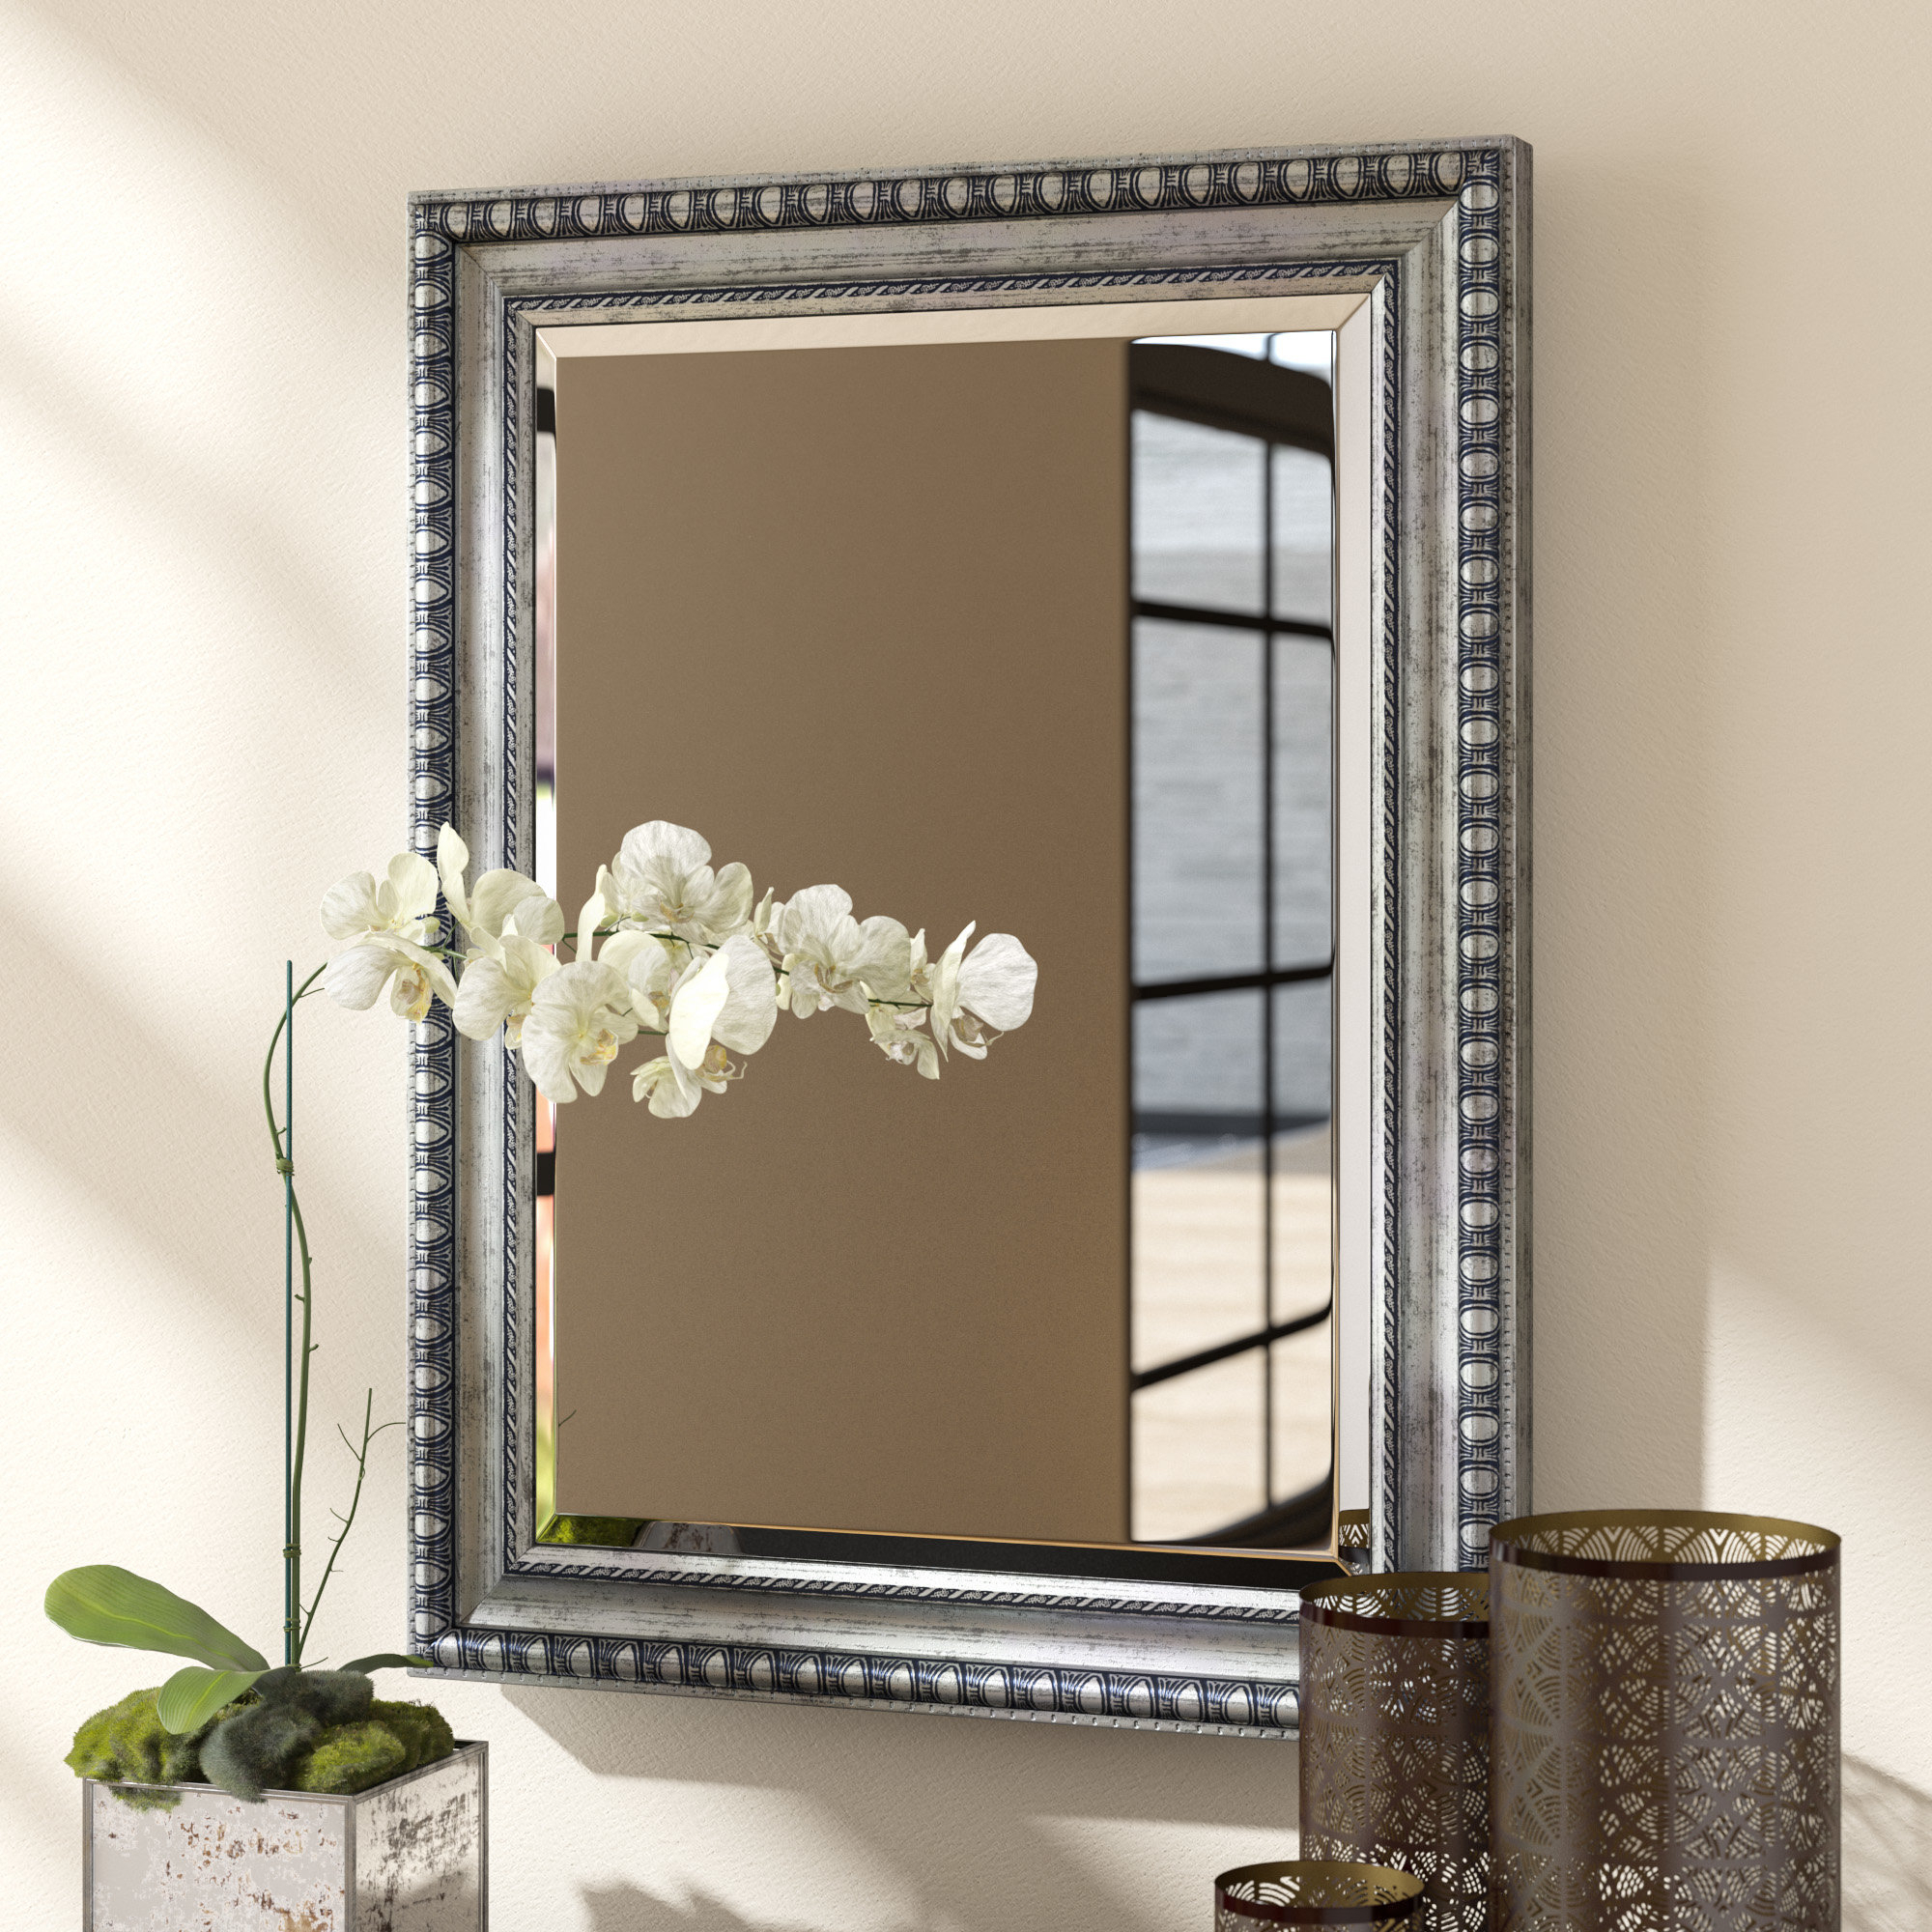 Trendy Epinal Shabby Elegance Wall Mirrors In Eriq Framed Wall Mirror (View 4 of 20)